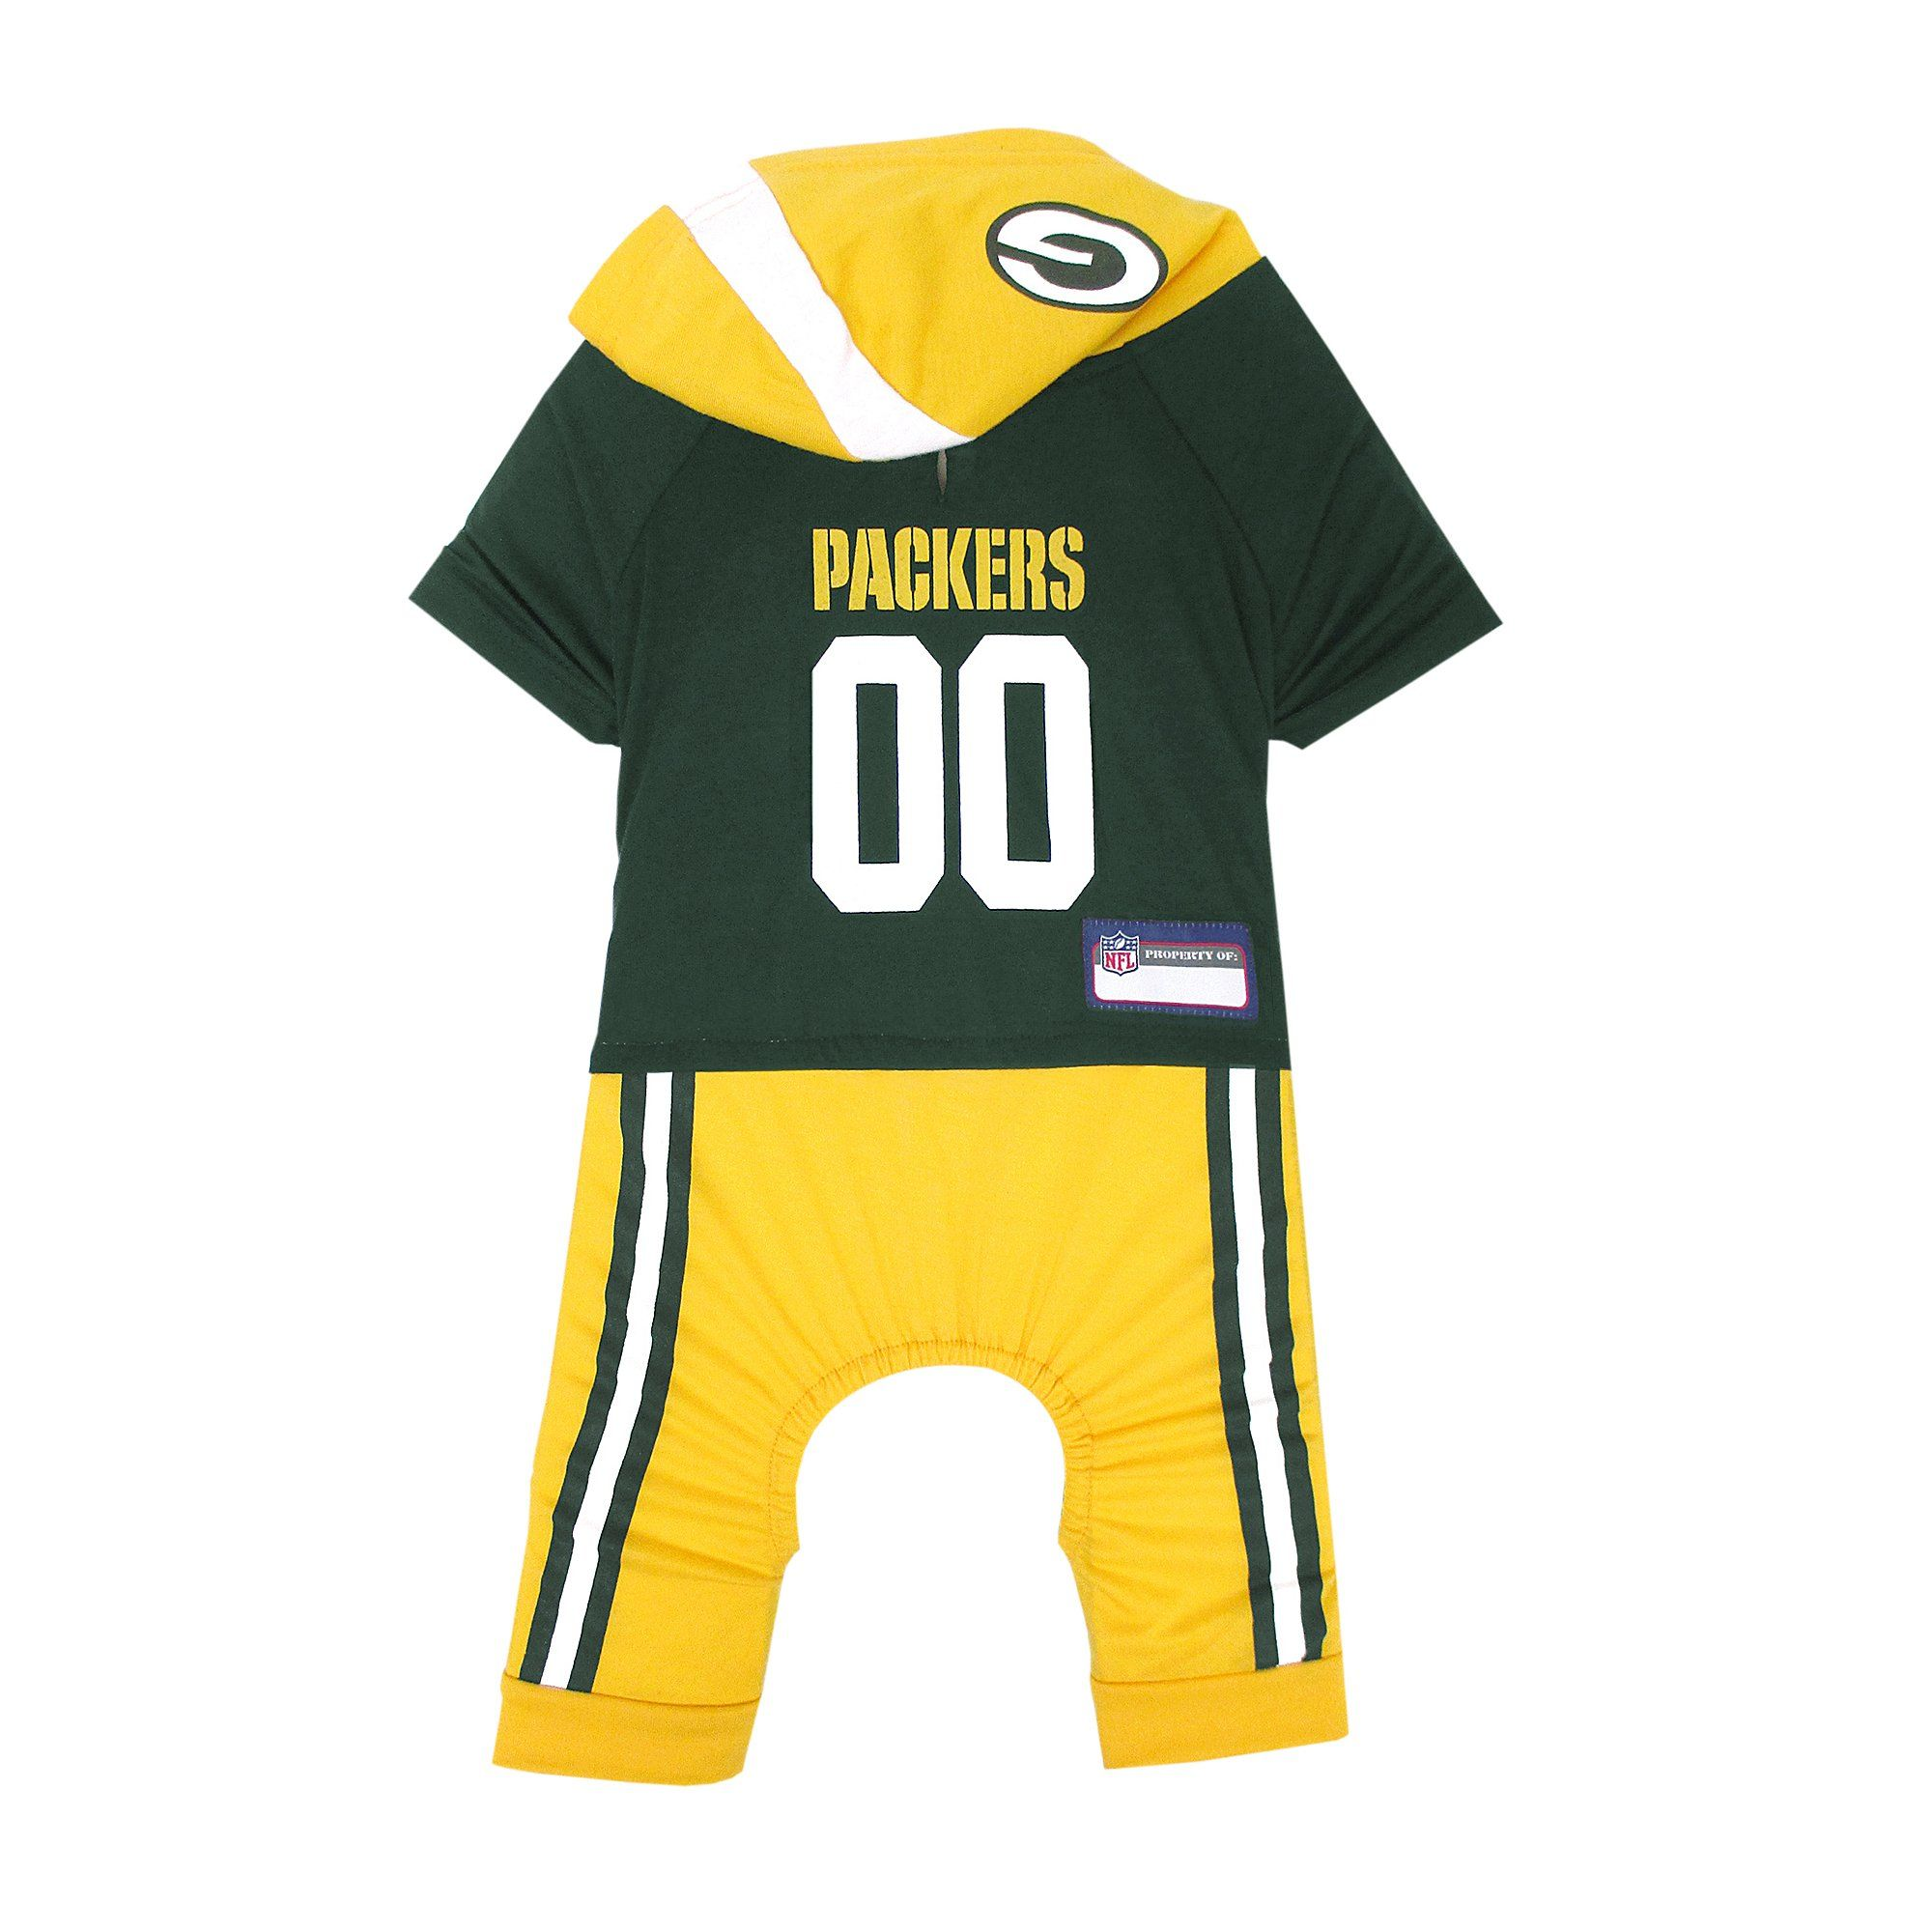 Pets First Green Bay Packers Team Uniform Onesi for Dogs